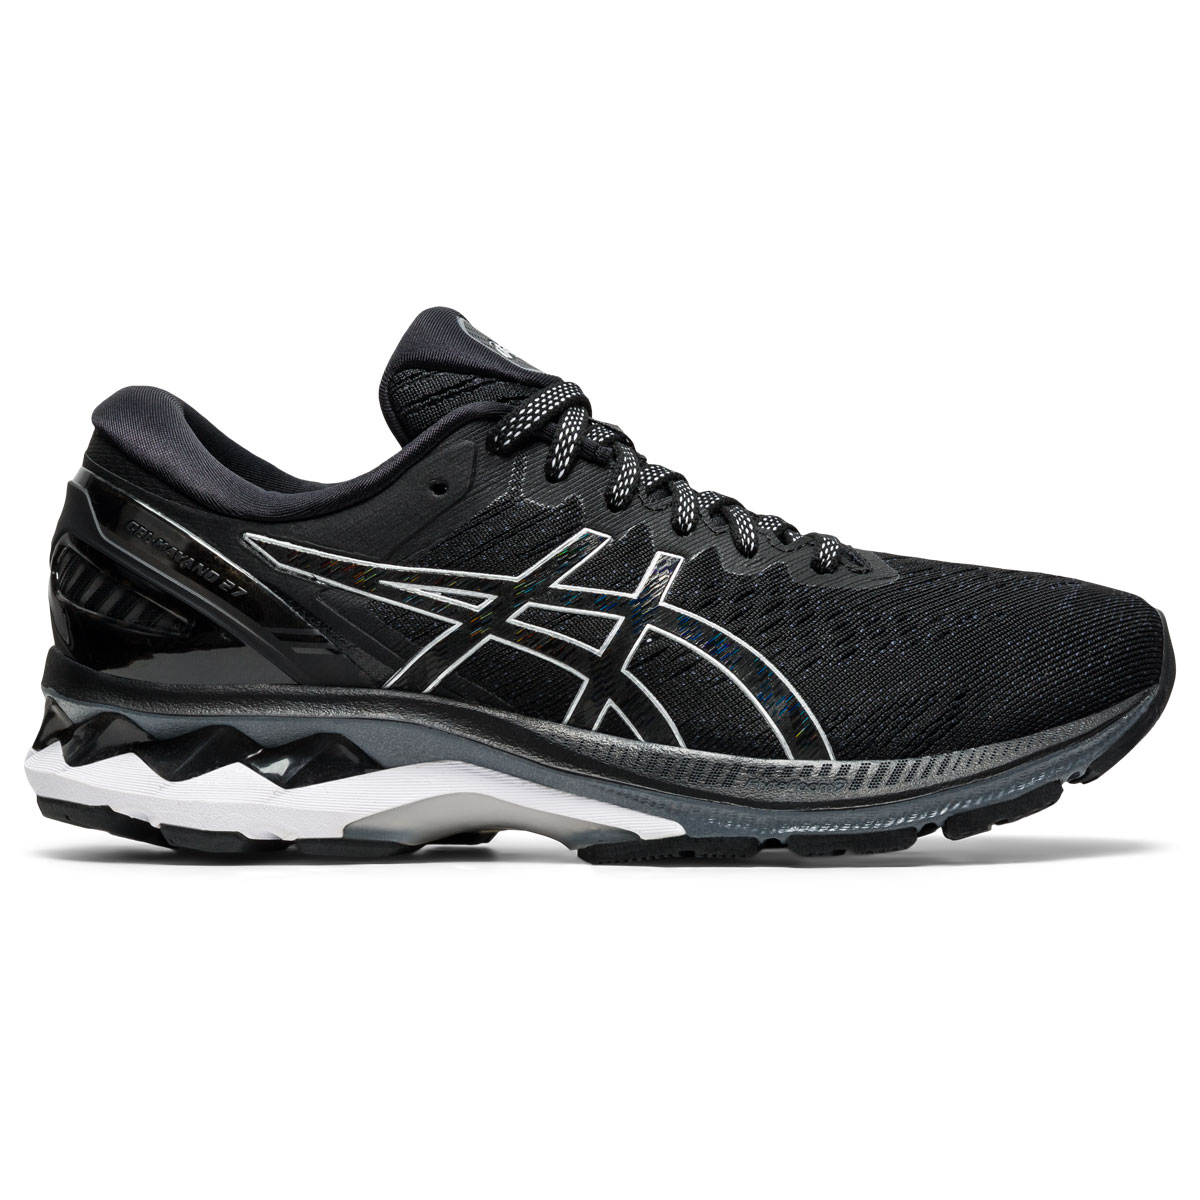 Women's Asics GEL-Kayano 27 Running Shoe, , large, image 1